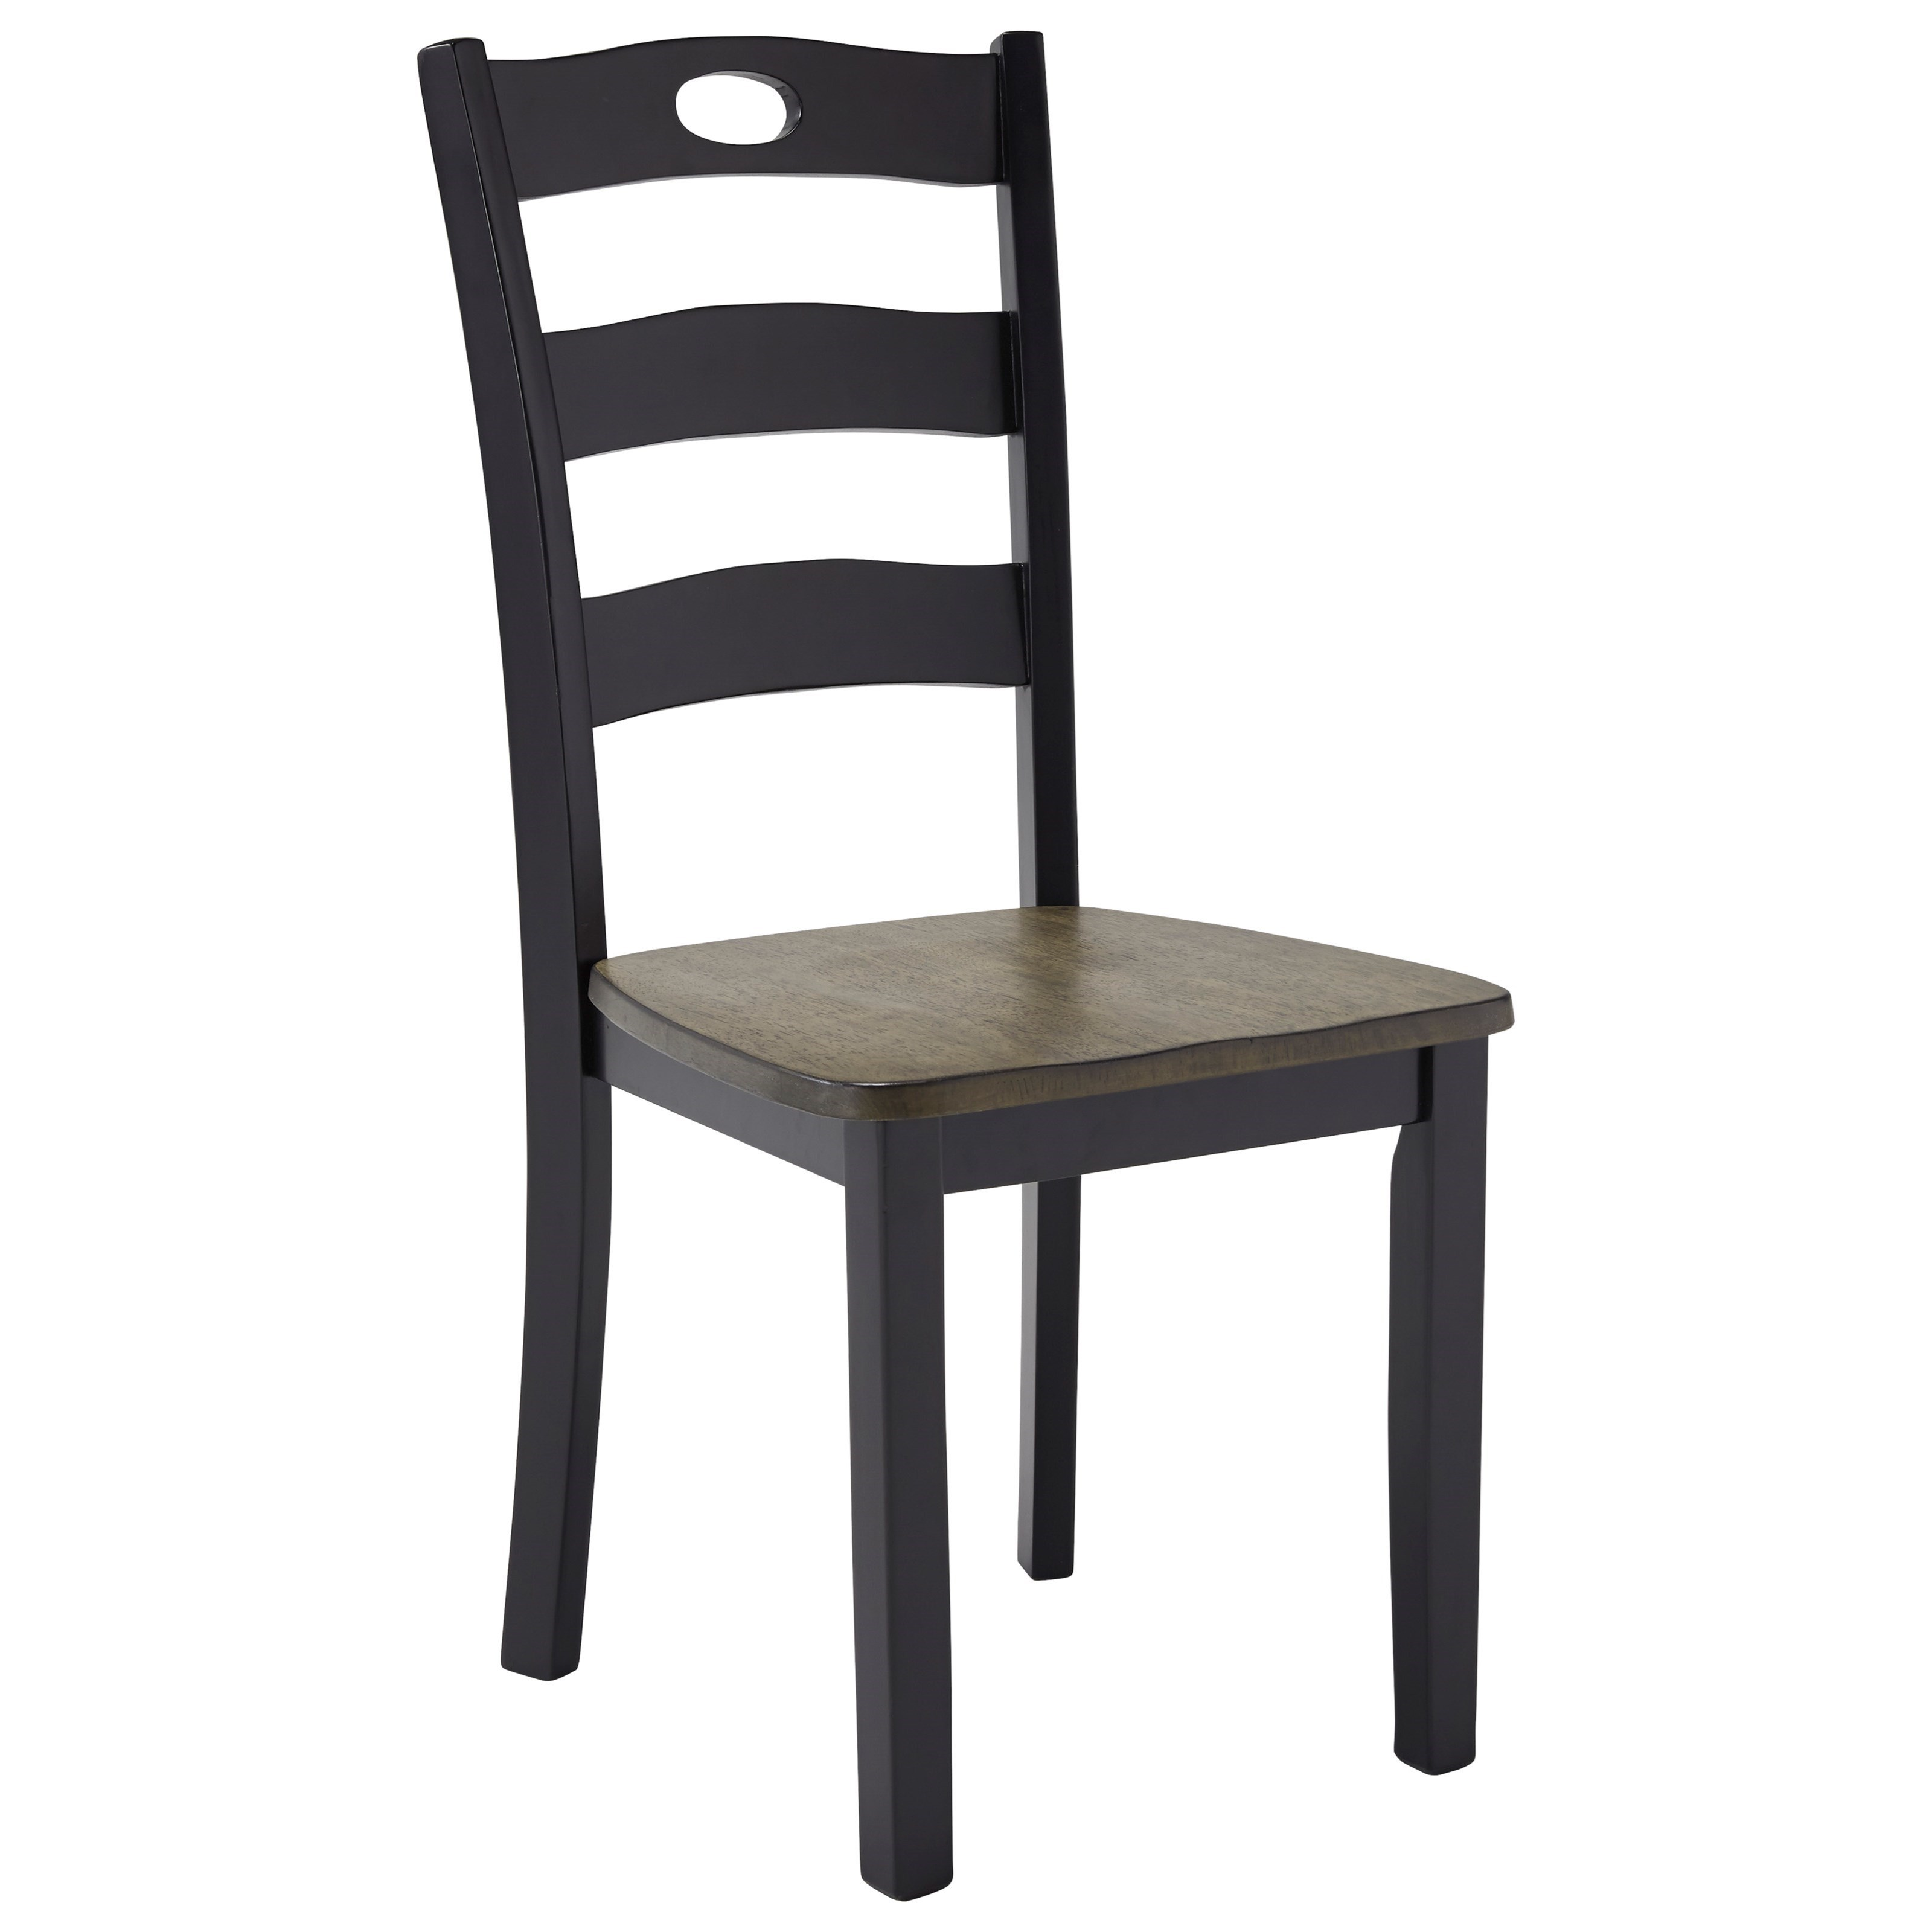 Froshburg Dining Room Side Chair by Benchcraft at Virginia Furniture Market